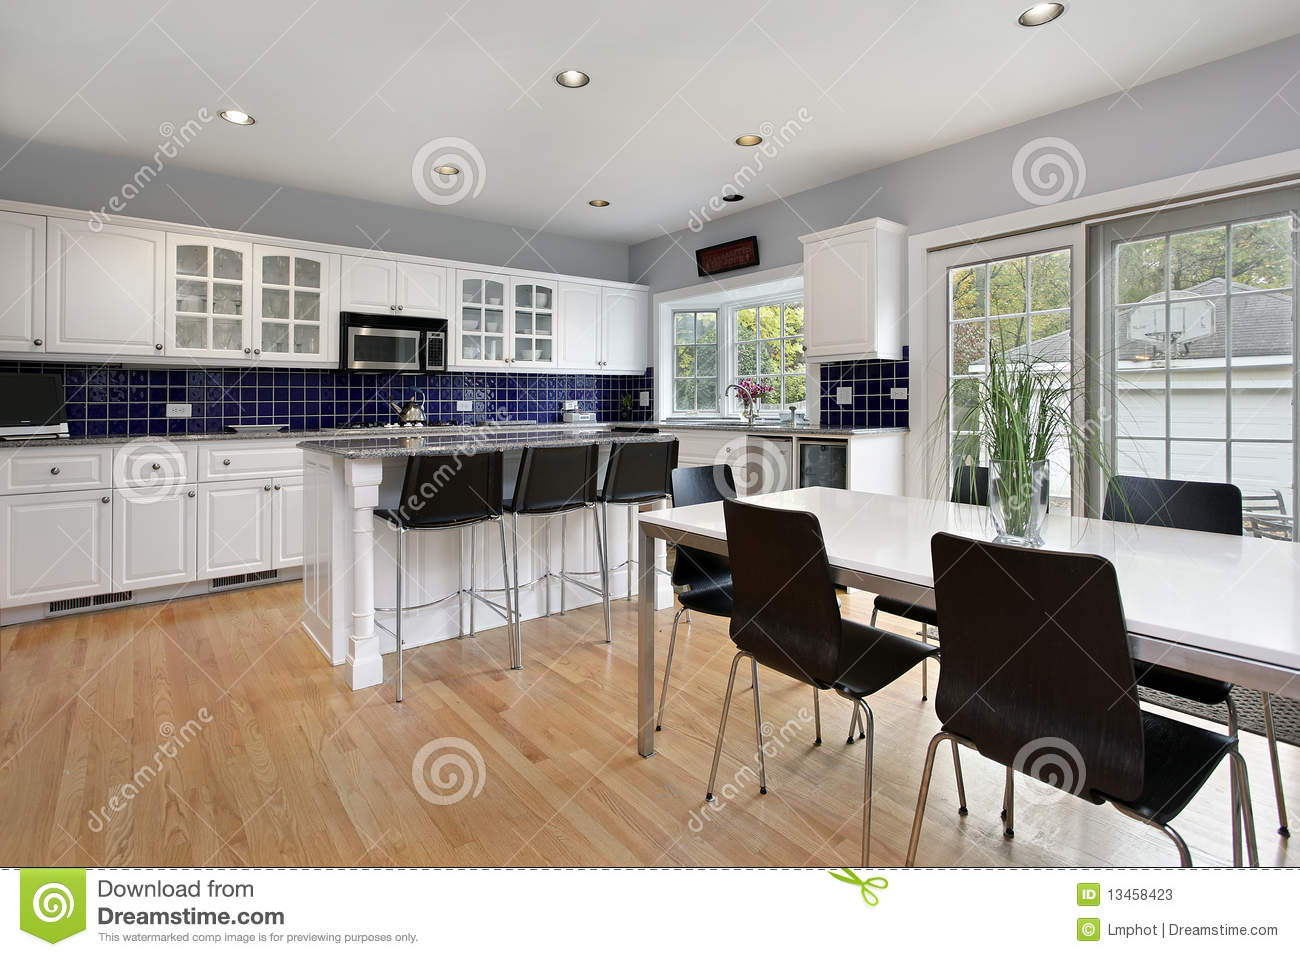 Blue tile backsplash kitchen -  Kitchen With Blue Tile Backsplash Download